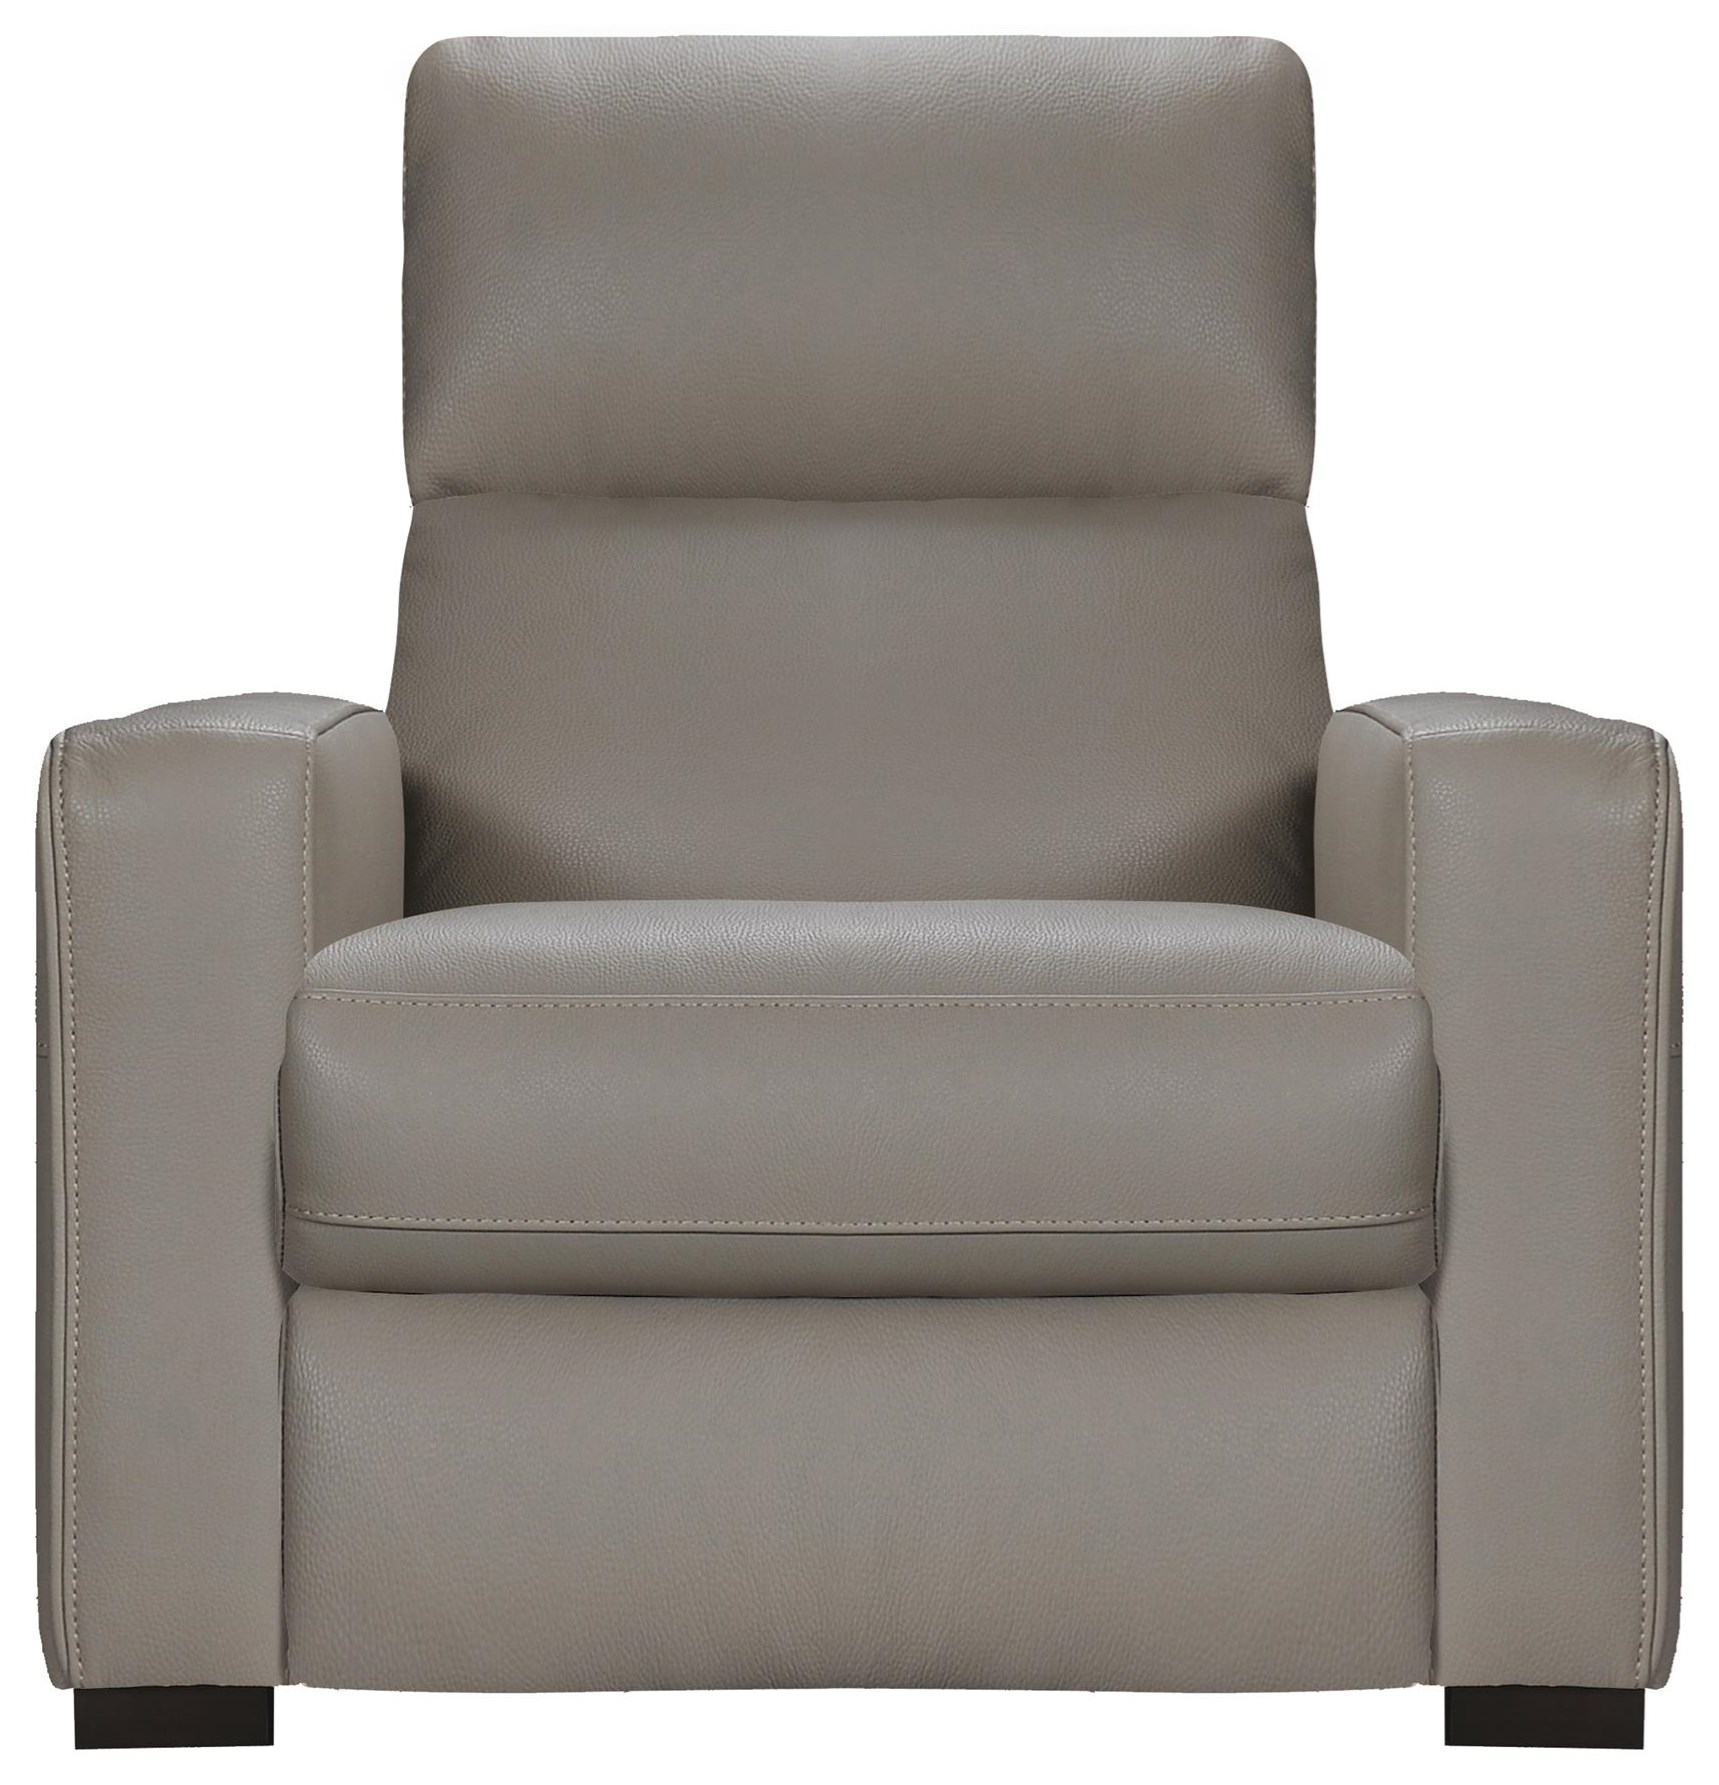 32139 RECLINING LEATHER CHAIR by Violino at Stoney Creek Furniture